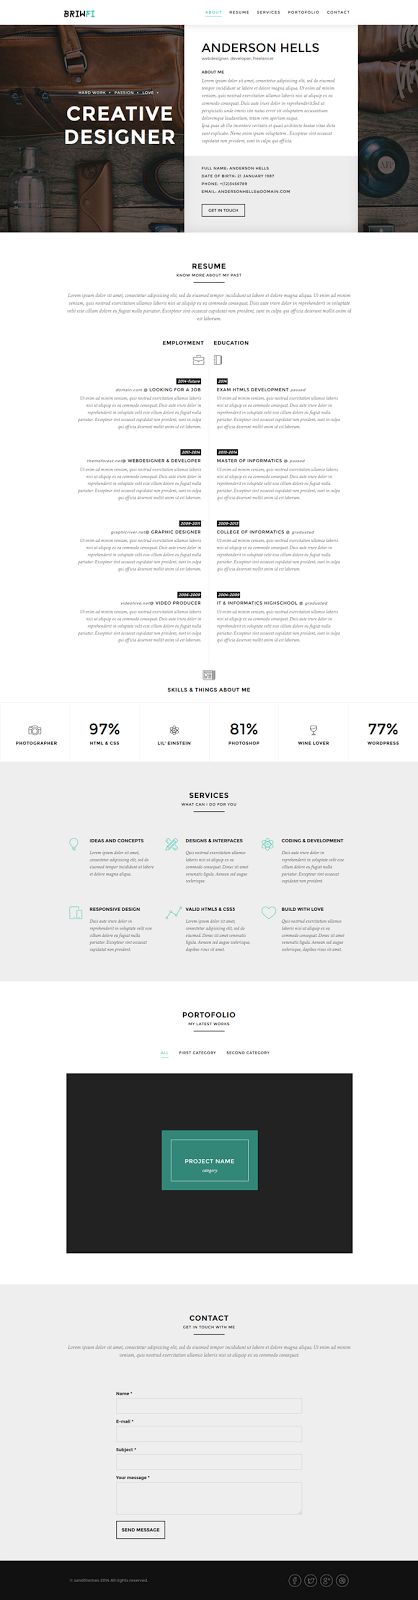 Onepage Resume Bootstrap3 Template